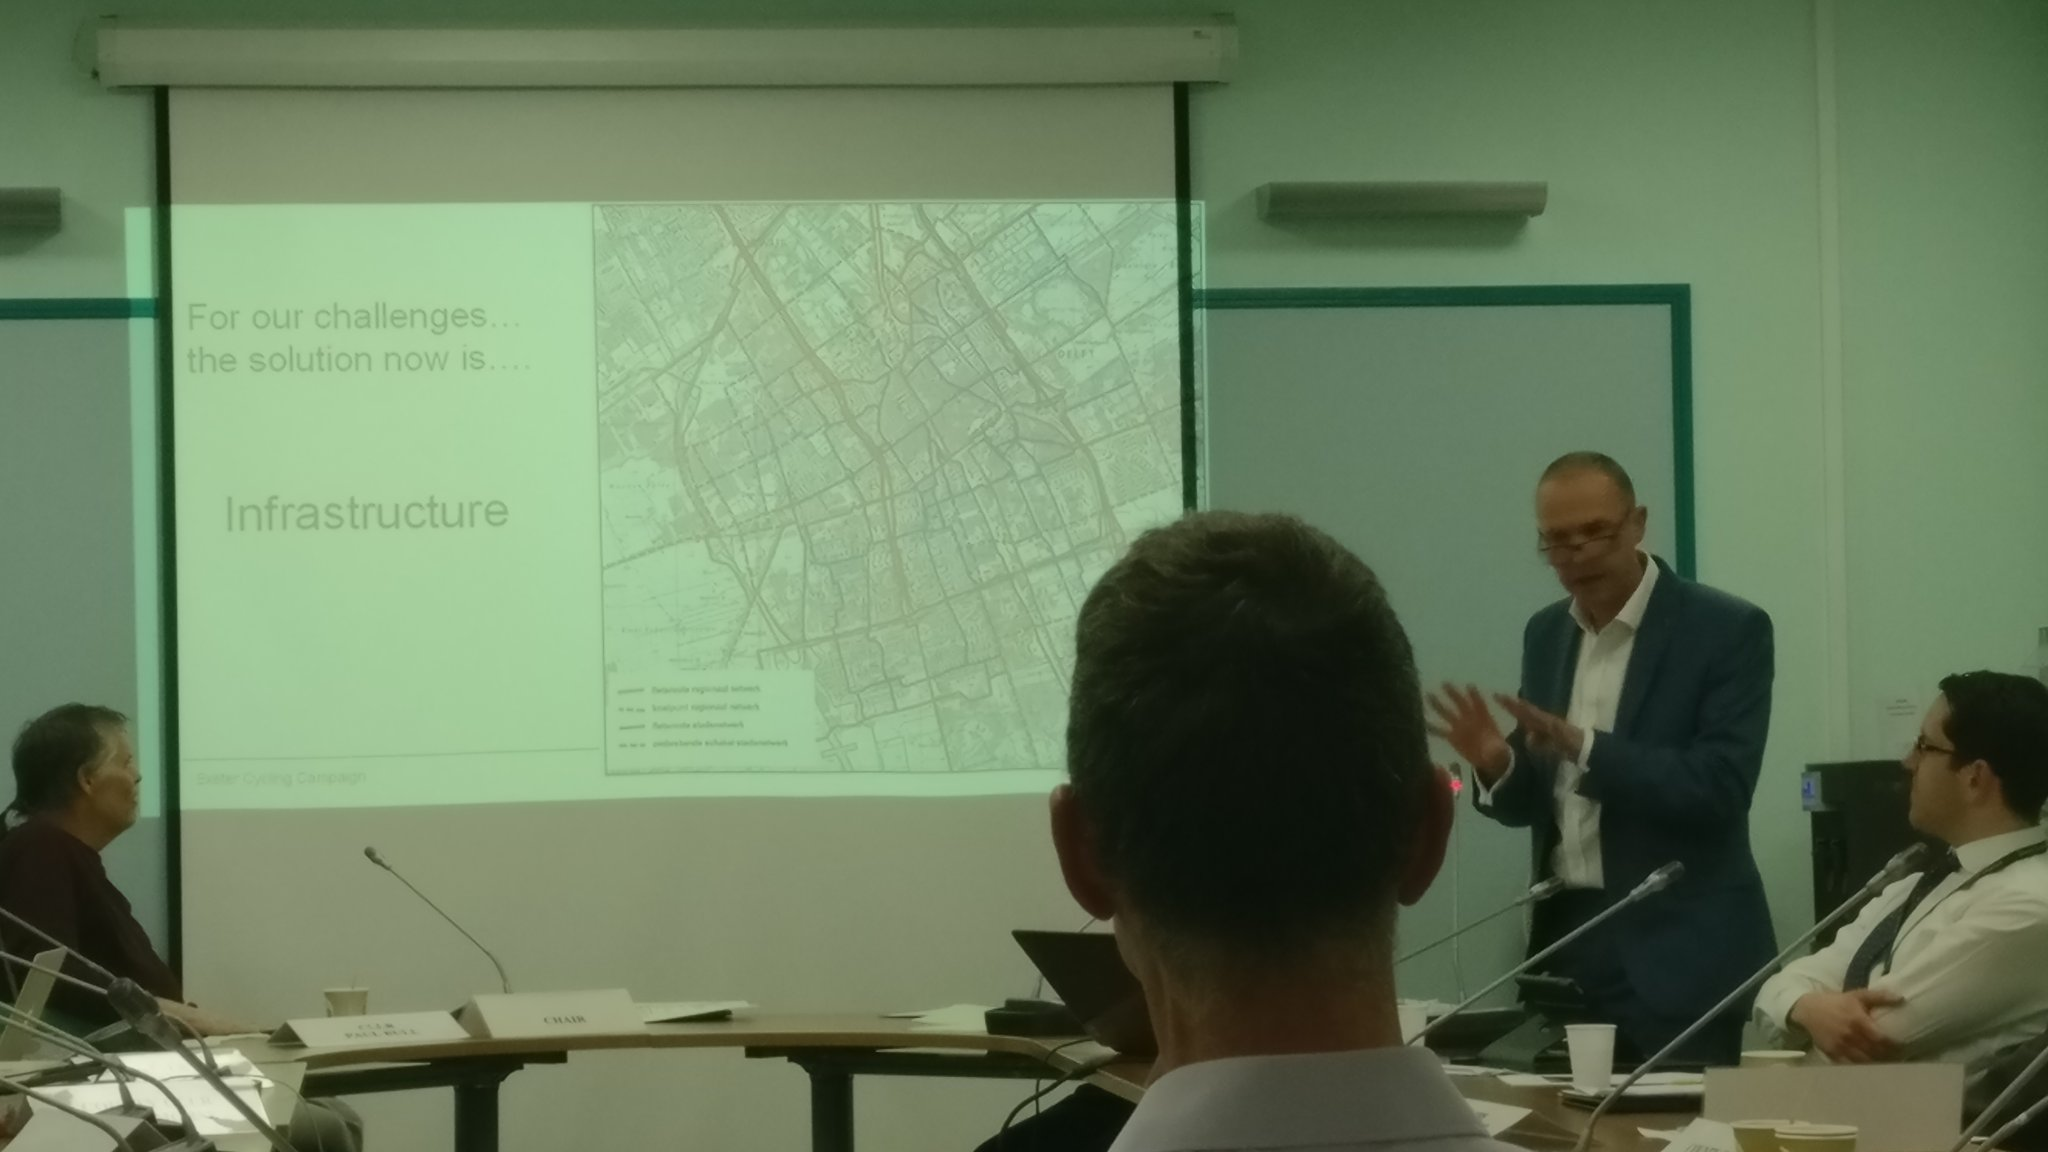 .@miketwalton telling it like it is @ExeterCouncil #ExeterBoard proposing affordable, actionable #cycling #solutions @ExeterCycling https://t.co/V8ucF1E5Ok